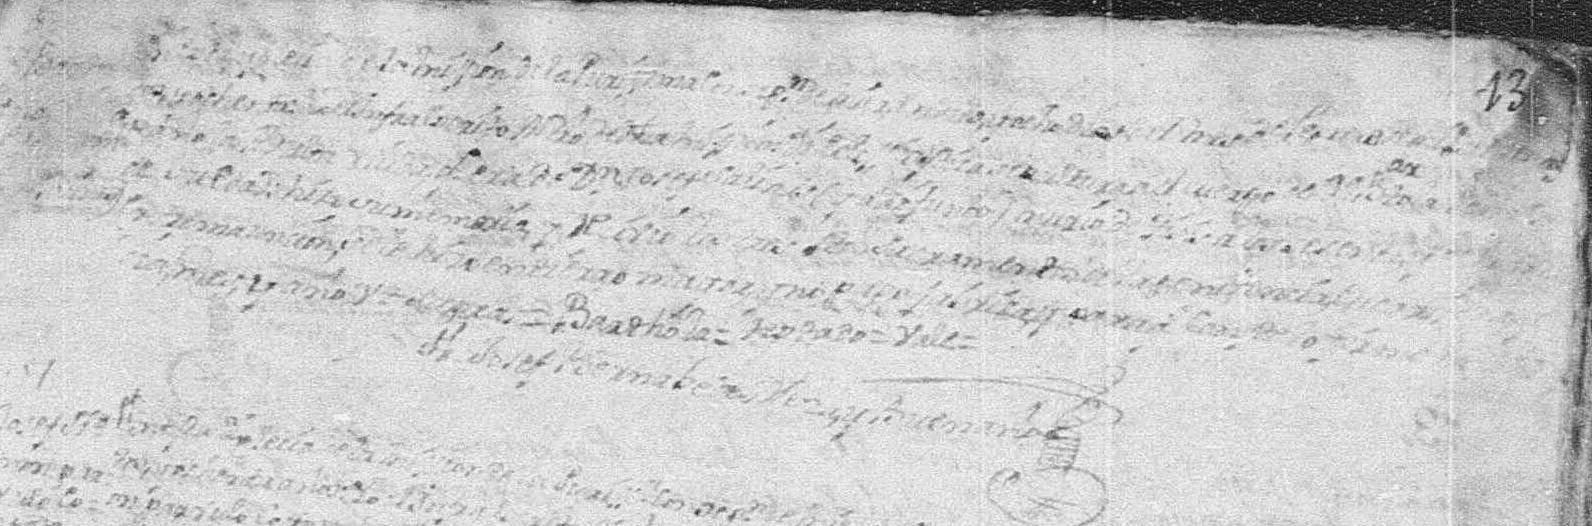 Death Record of Maria Bartola Pena Mier 1780